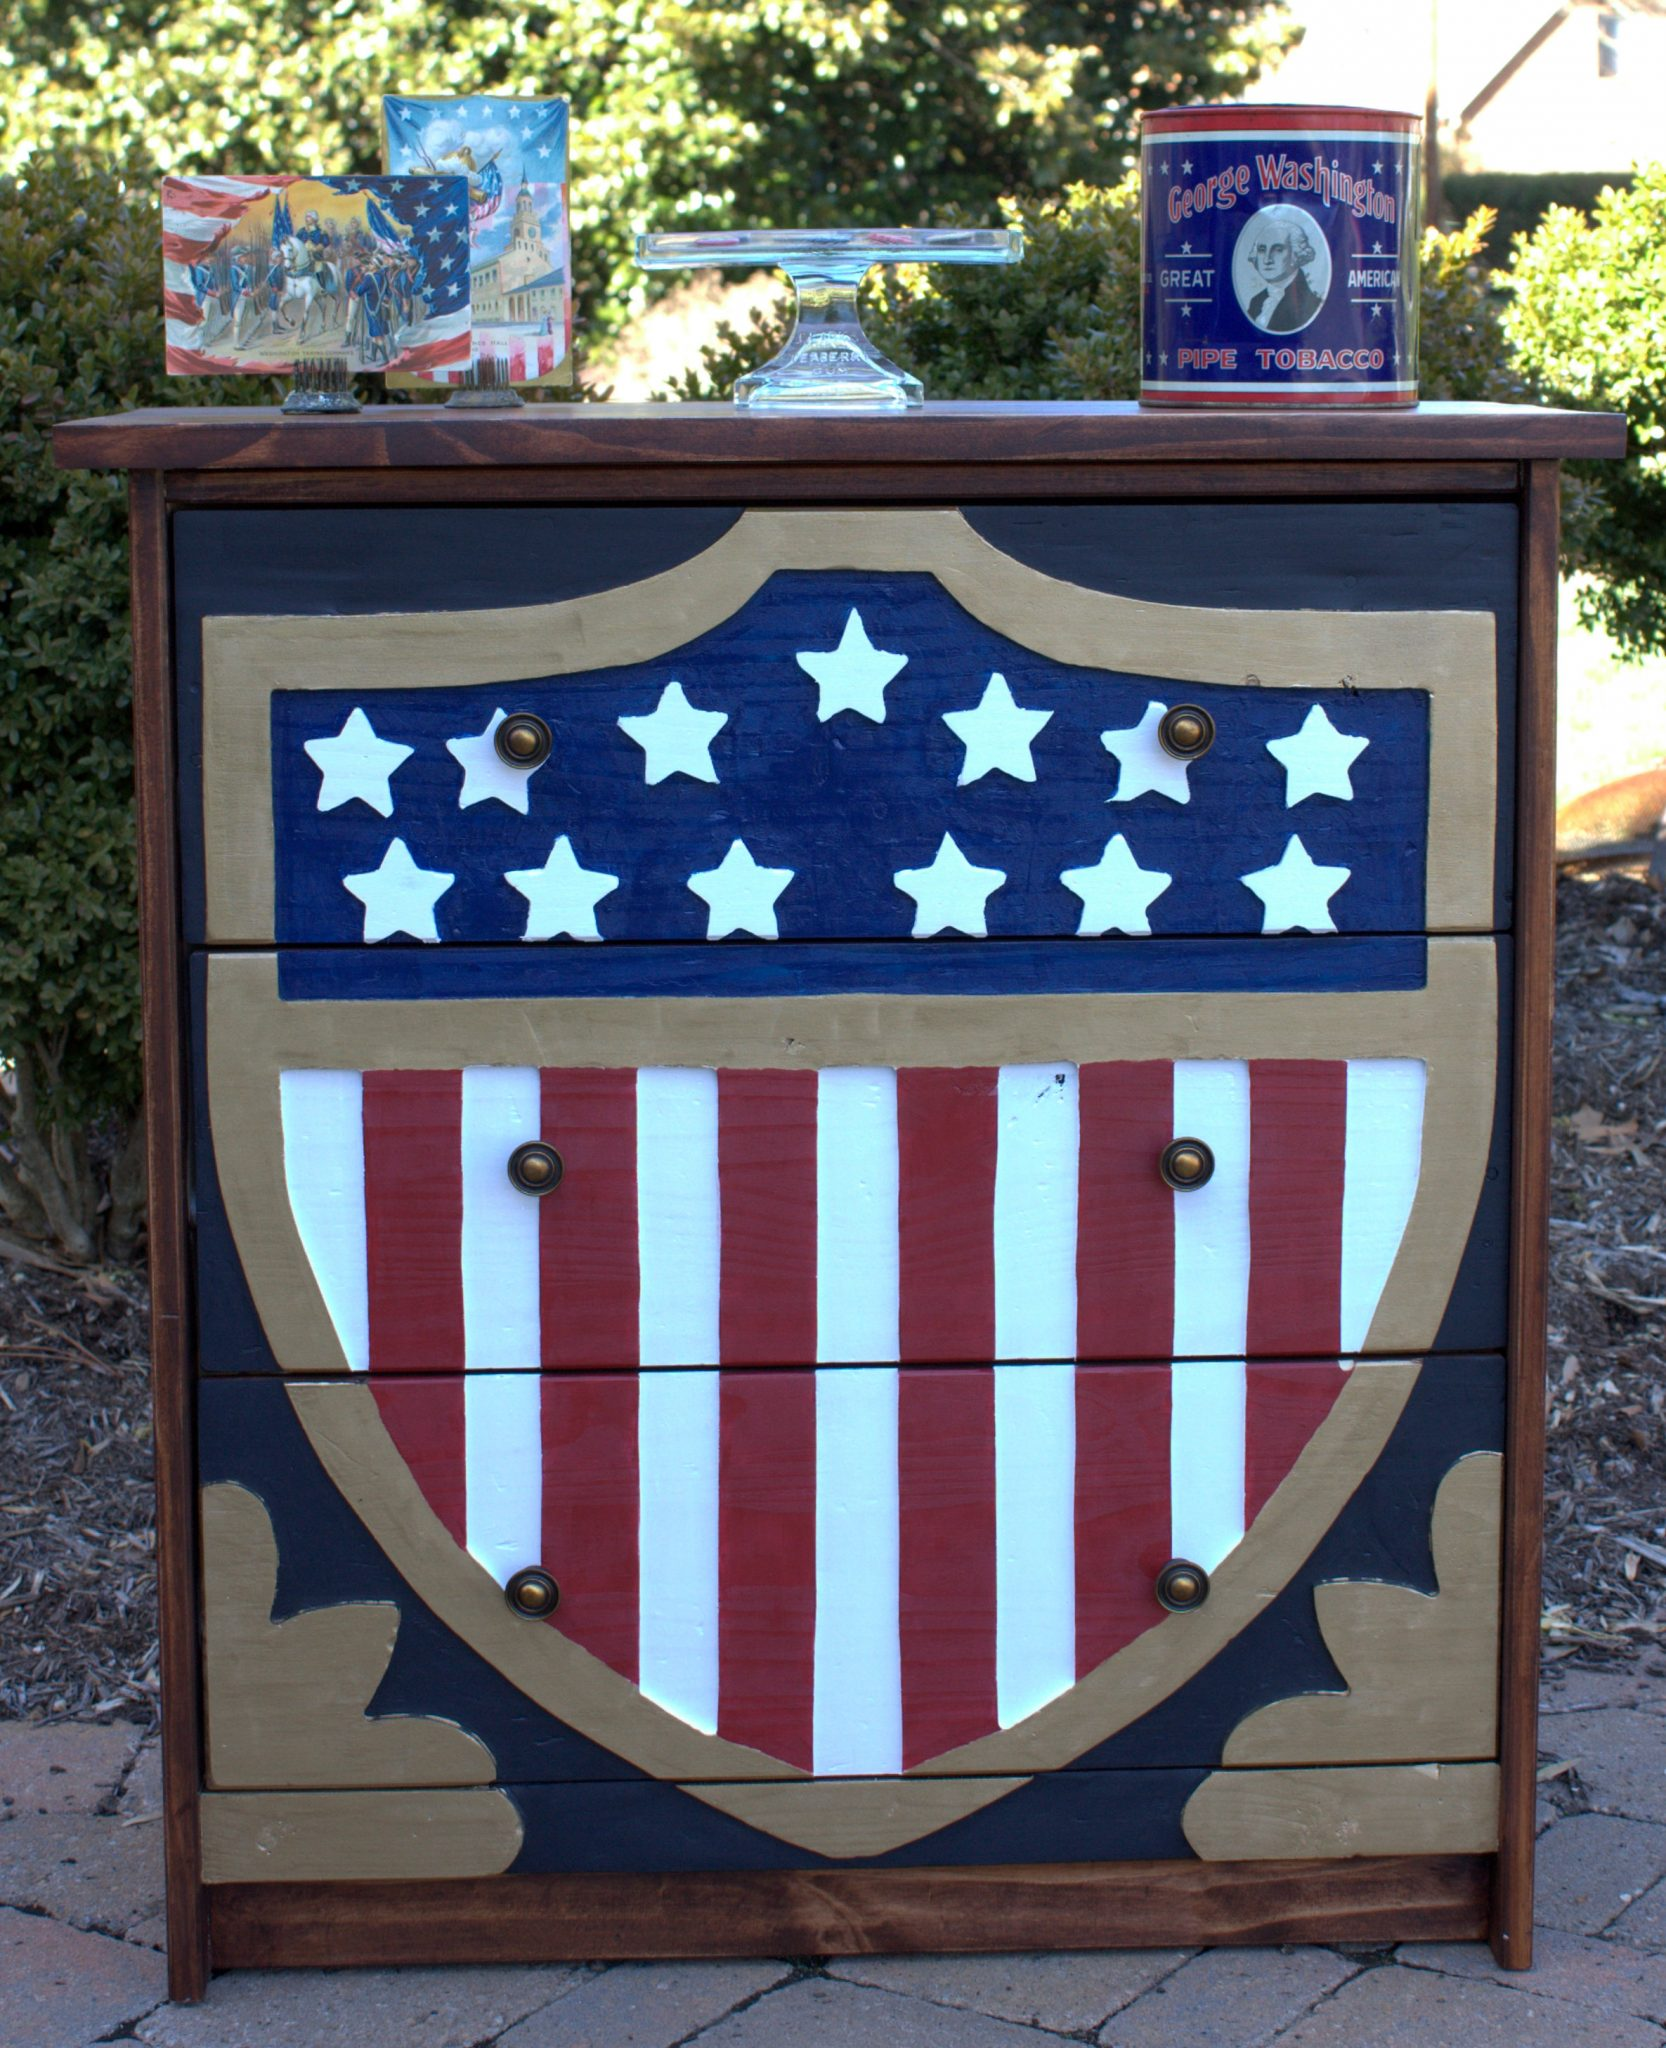 Ikea Rast chest turned patriotic with an American flag shield